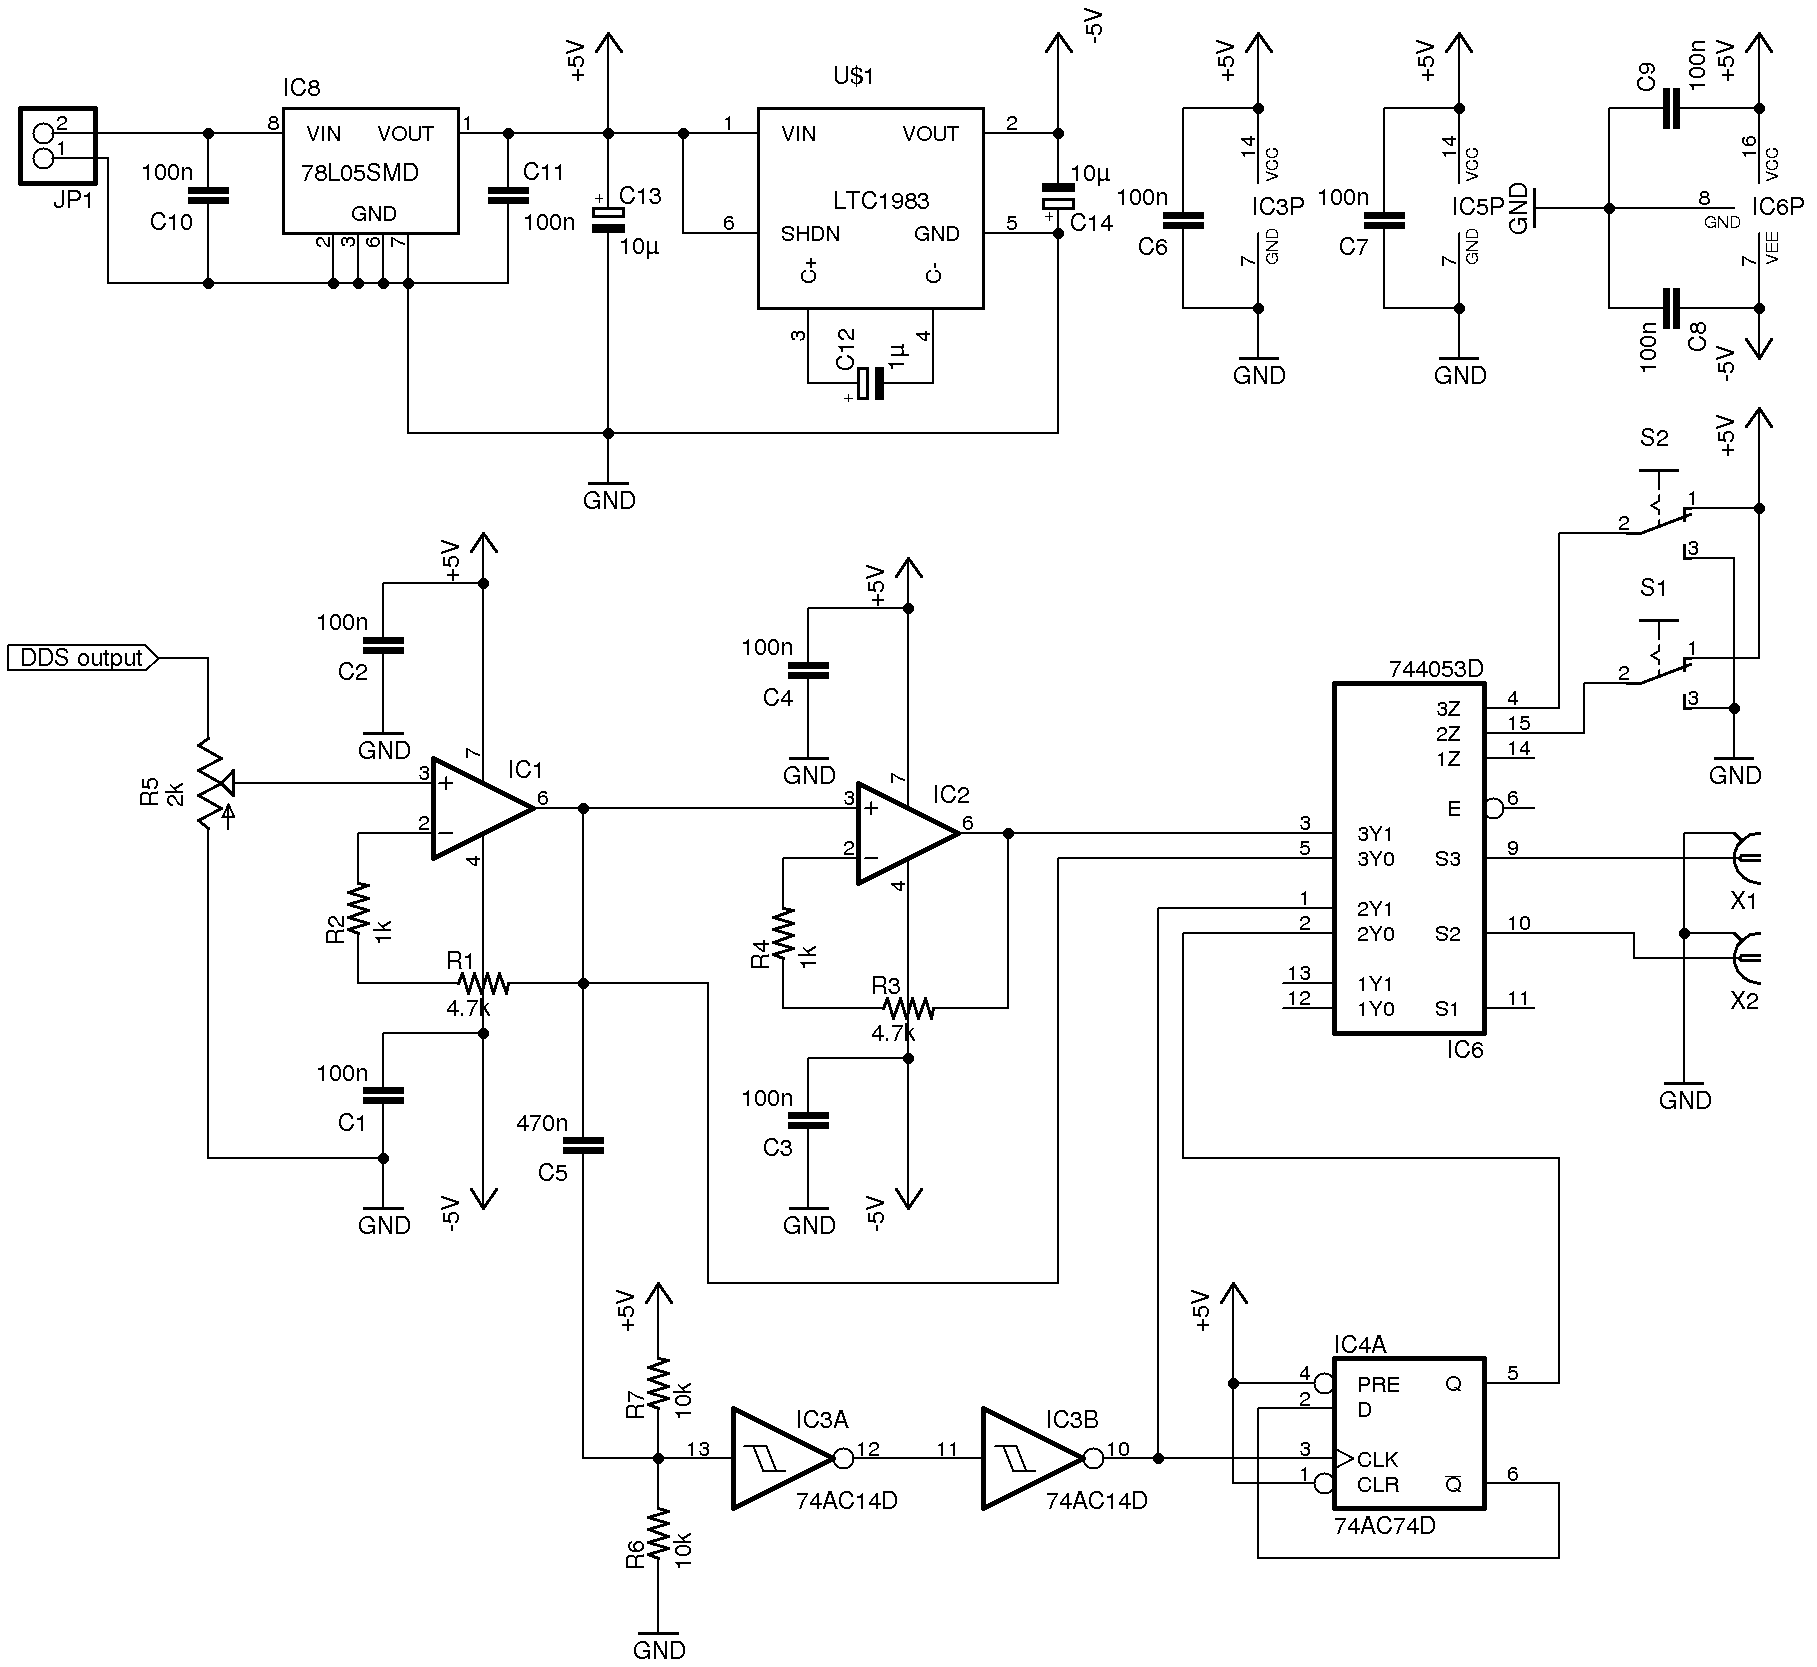 function block diagram with Dds Function Generator on 13t moreover 8237 8257 Dma additionally Program Plc Untuk Kontrol Motor Belt besides MCandSDemoCase AIrevised SoftwareLoadInstructions AIrevBprint in addition Ignition Coil Drivers.